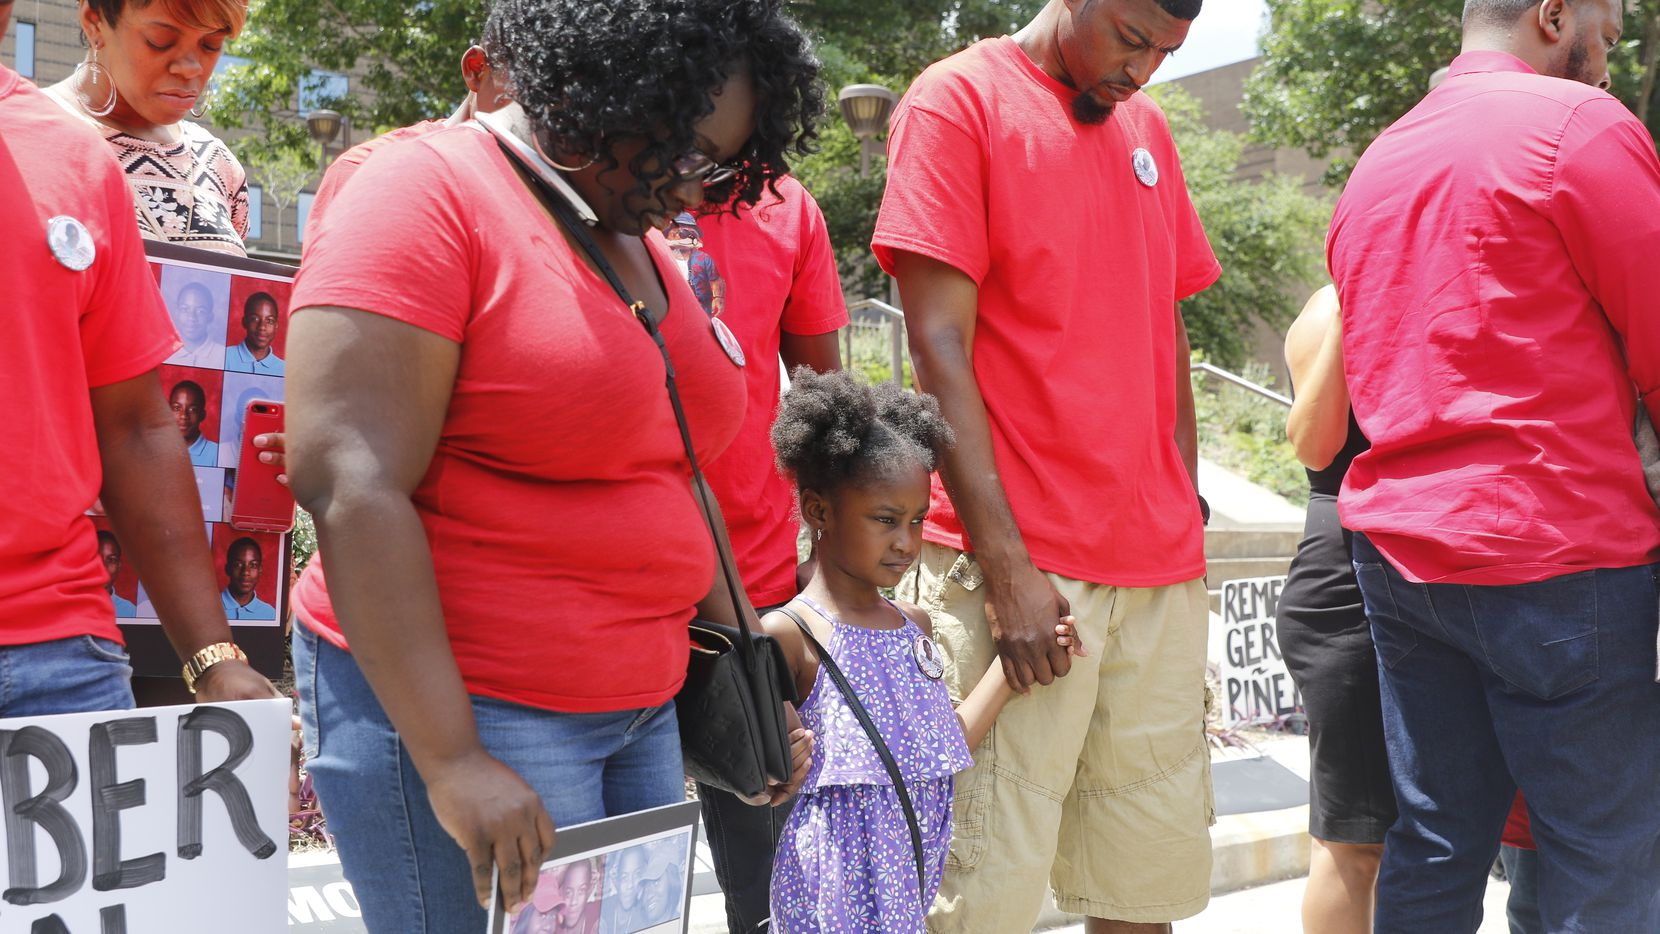 Jordan Edwards' stepmother, Charmaine Edwards, sister Korrie Edwards, and father, Odell Edwards, bowed in prayer at the Frank Crowley Courts Building on May 13, 2017, during a rally remembering Jordan and others killed by police.